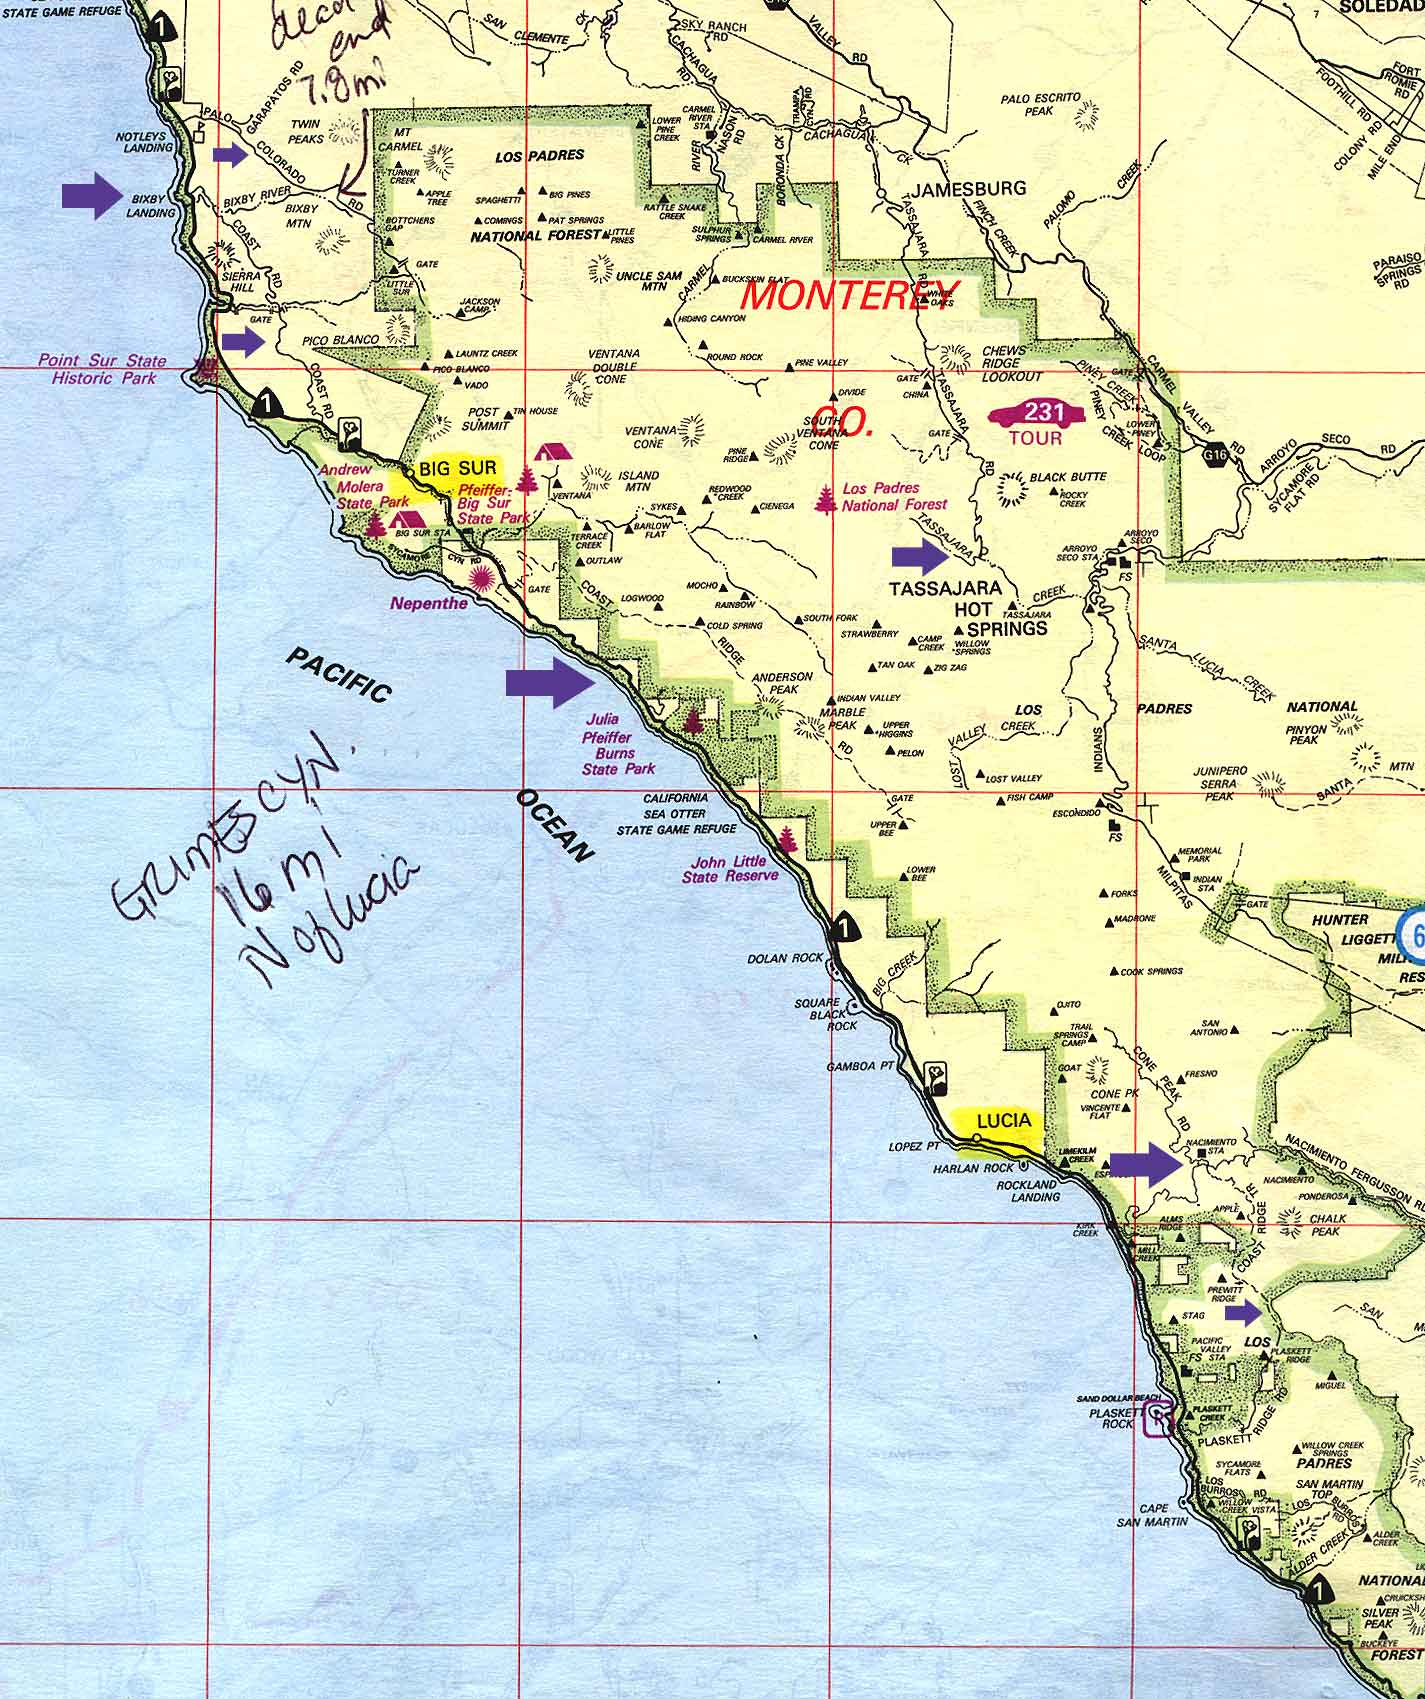 Free Camping Socal Los Padres National Forest Mt Pinos For - Southern California State Parks Map